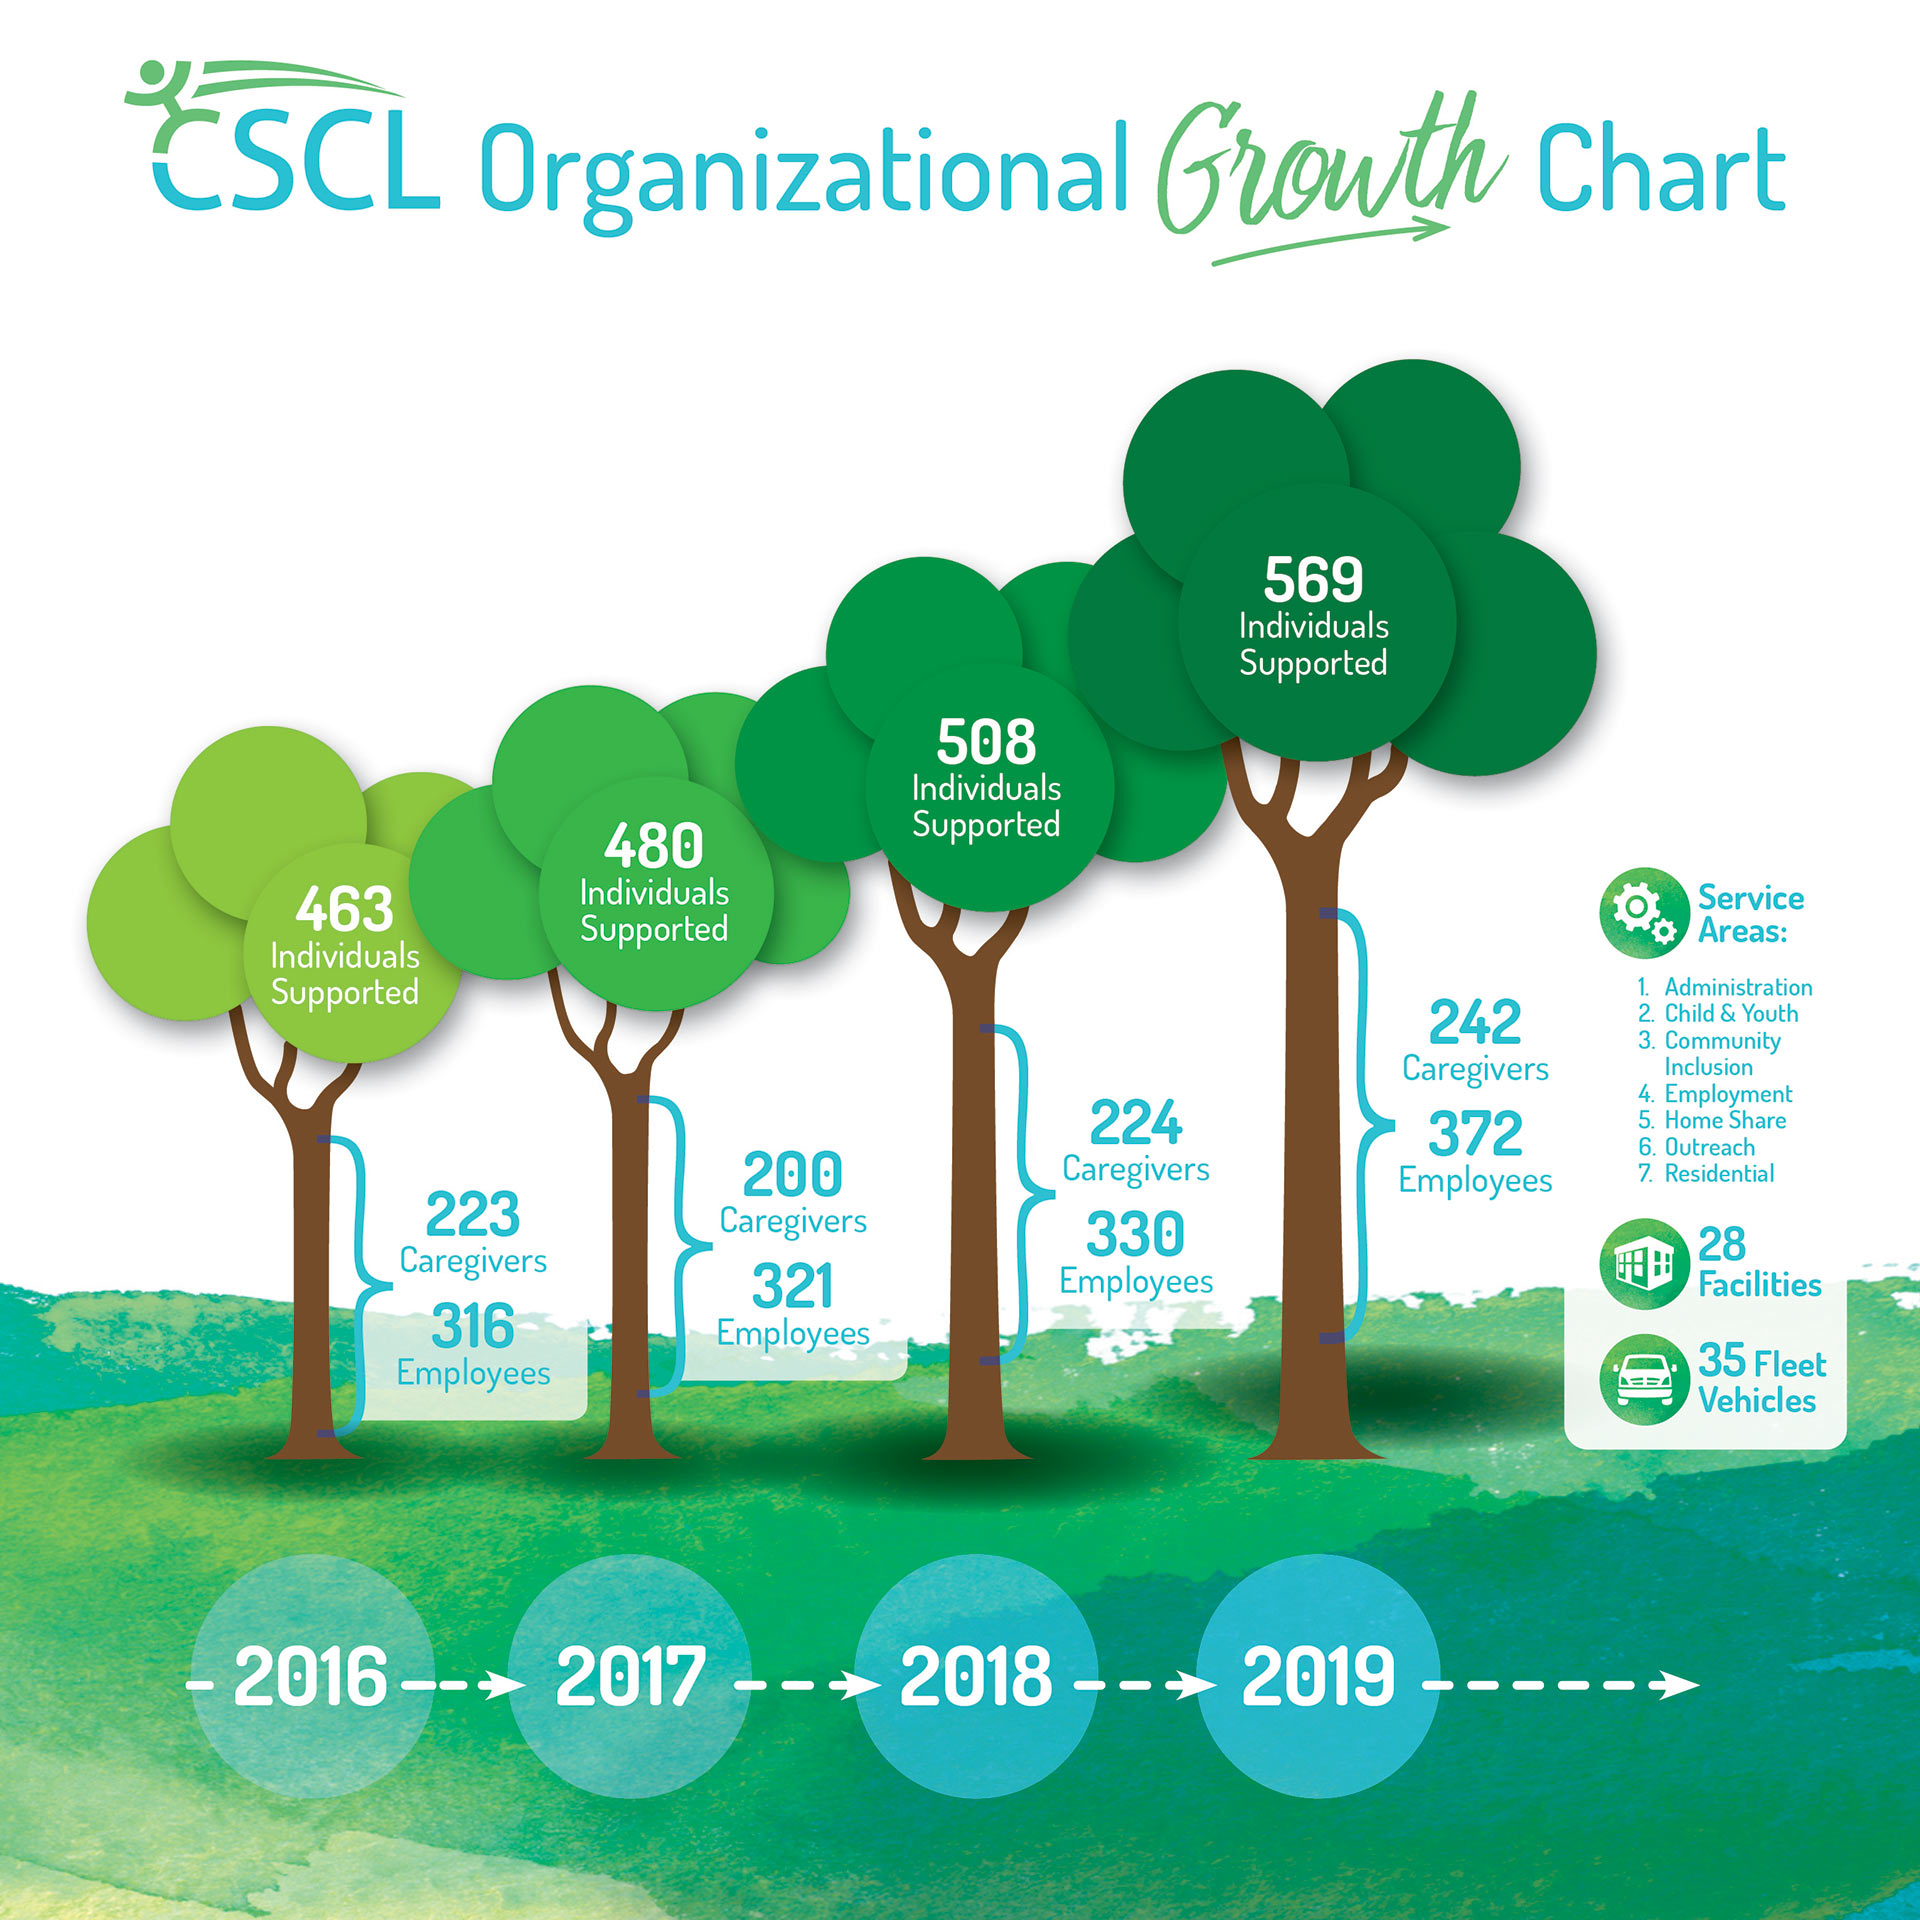 CSCL Organizational Growth Chart - 2016 to 2019